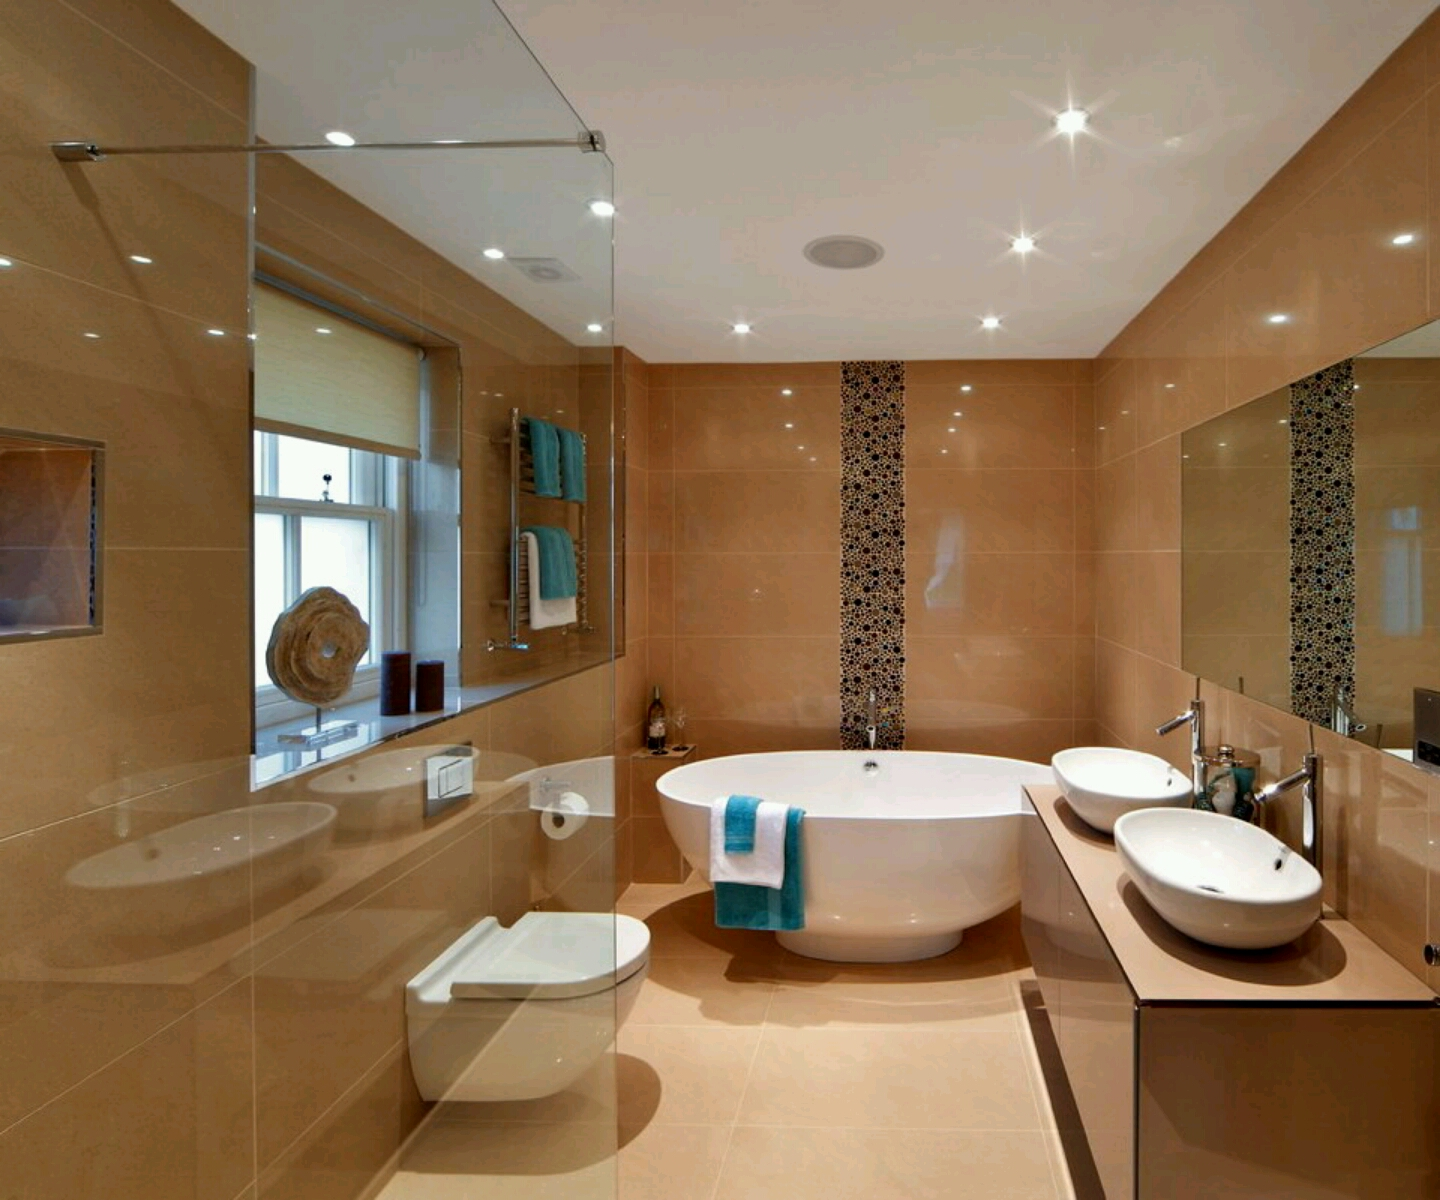 New home designs latest luxury modern bathrooms designs for House washroom design